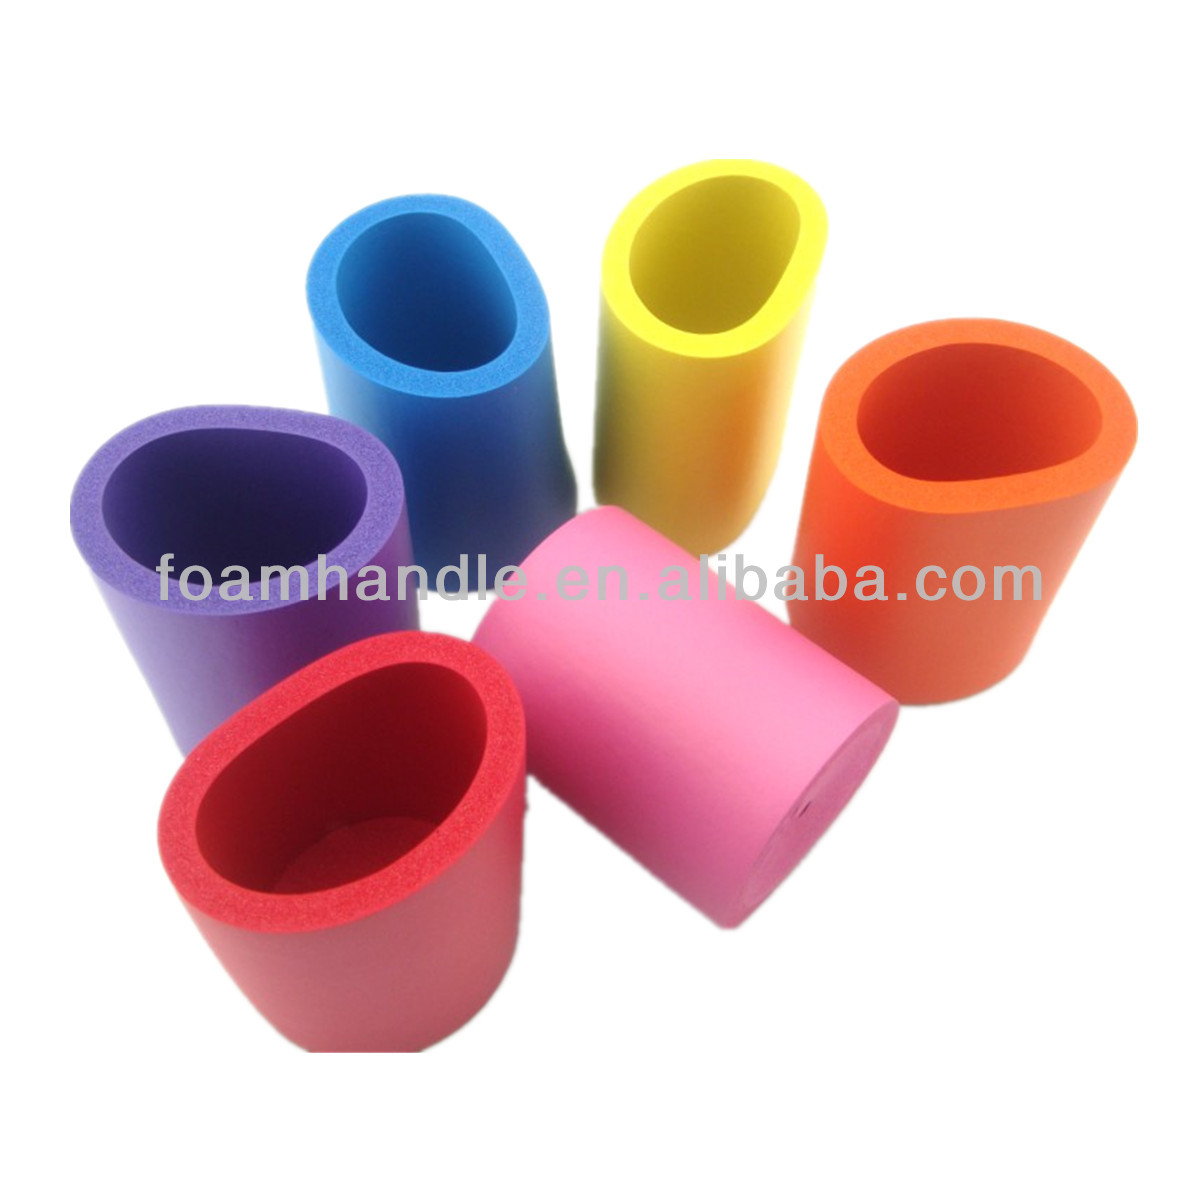 New Design Foam Can Holder 2014